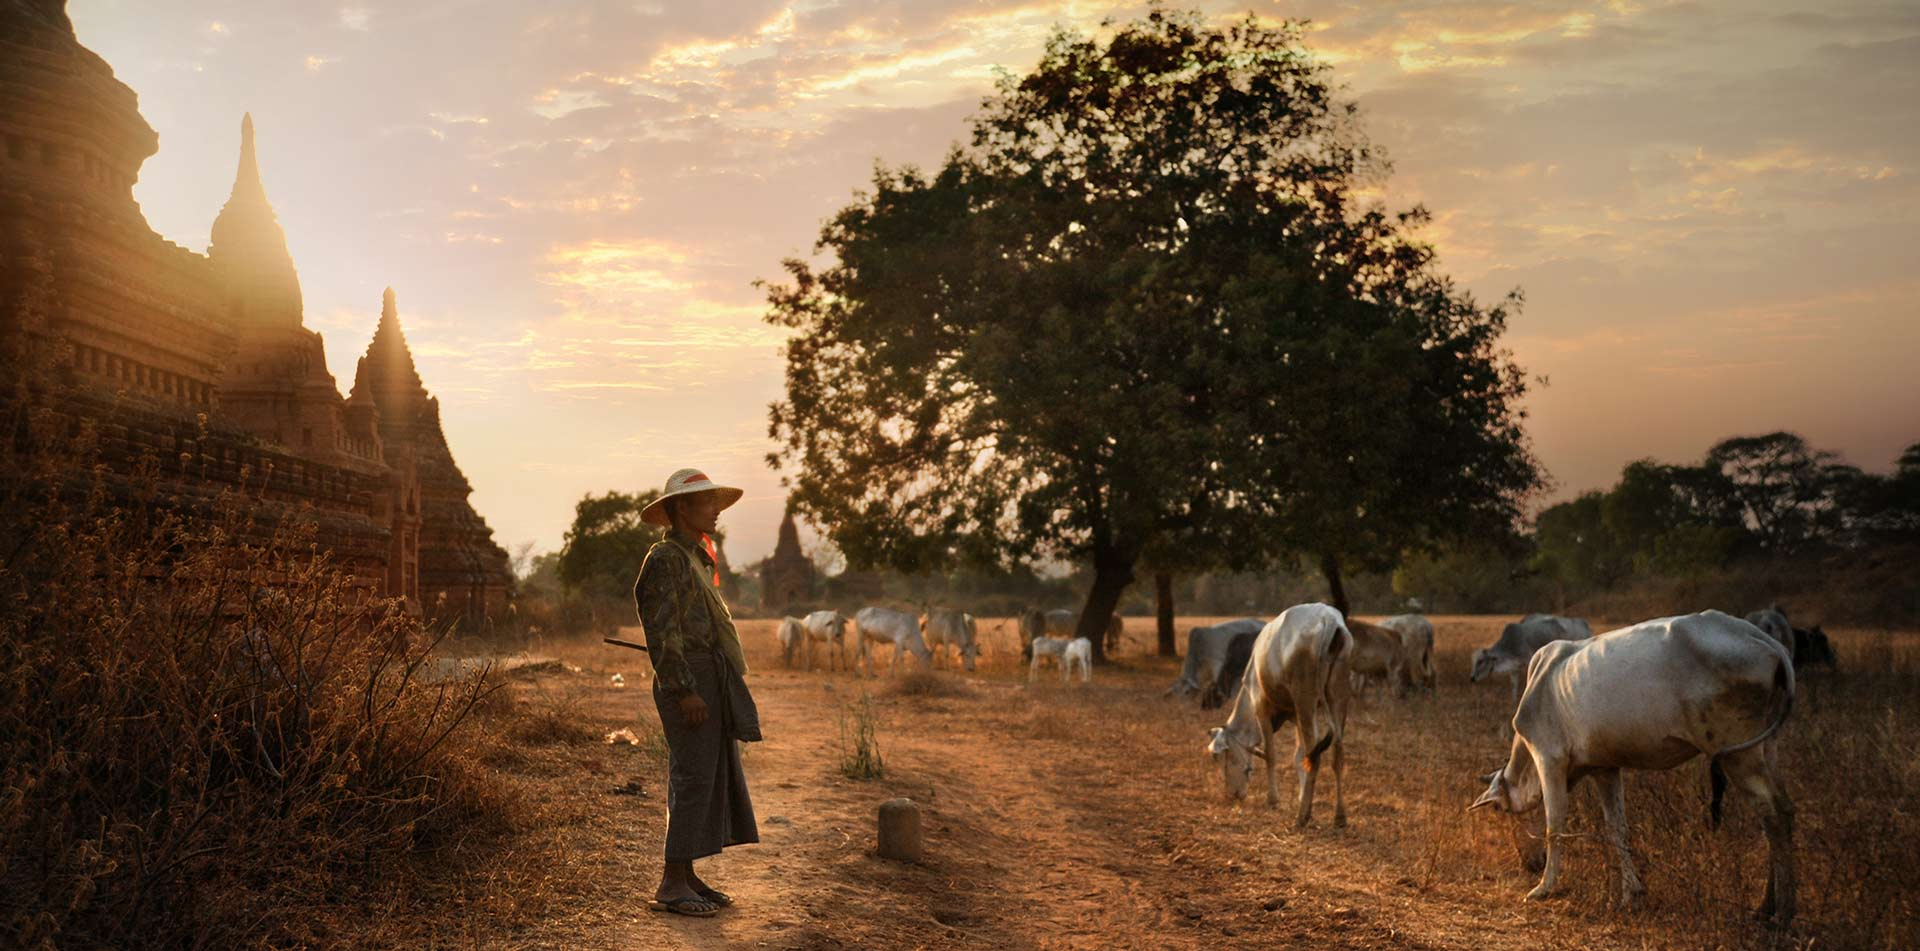 Asia Myanmar Bagan local cattle herder at sunset ancient temples countryside livestock   - luxury vacation destinations